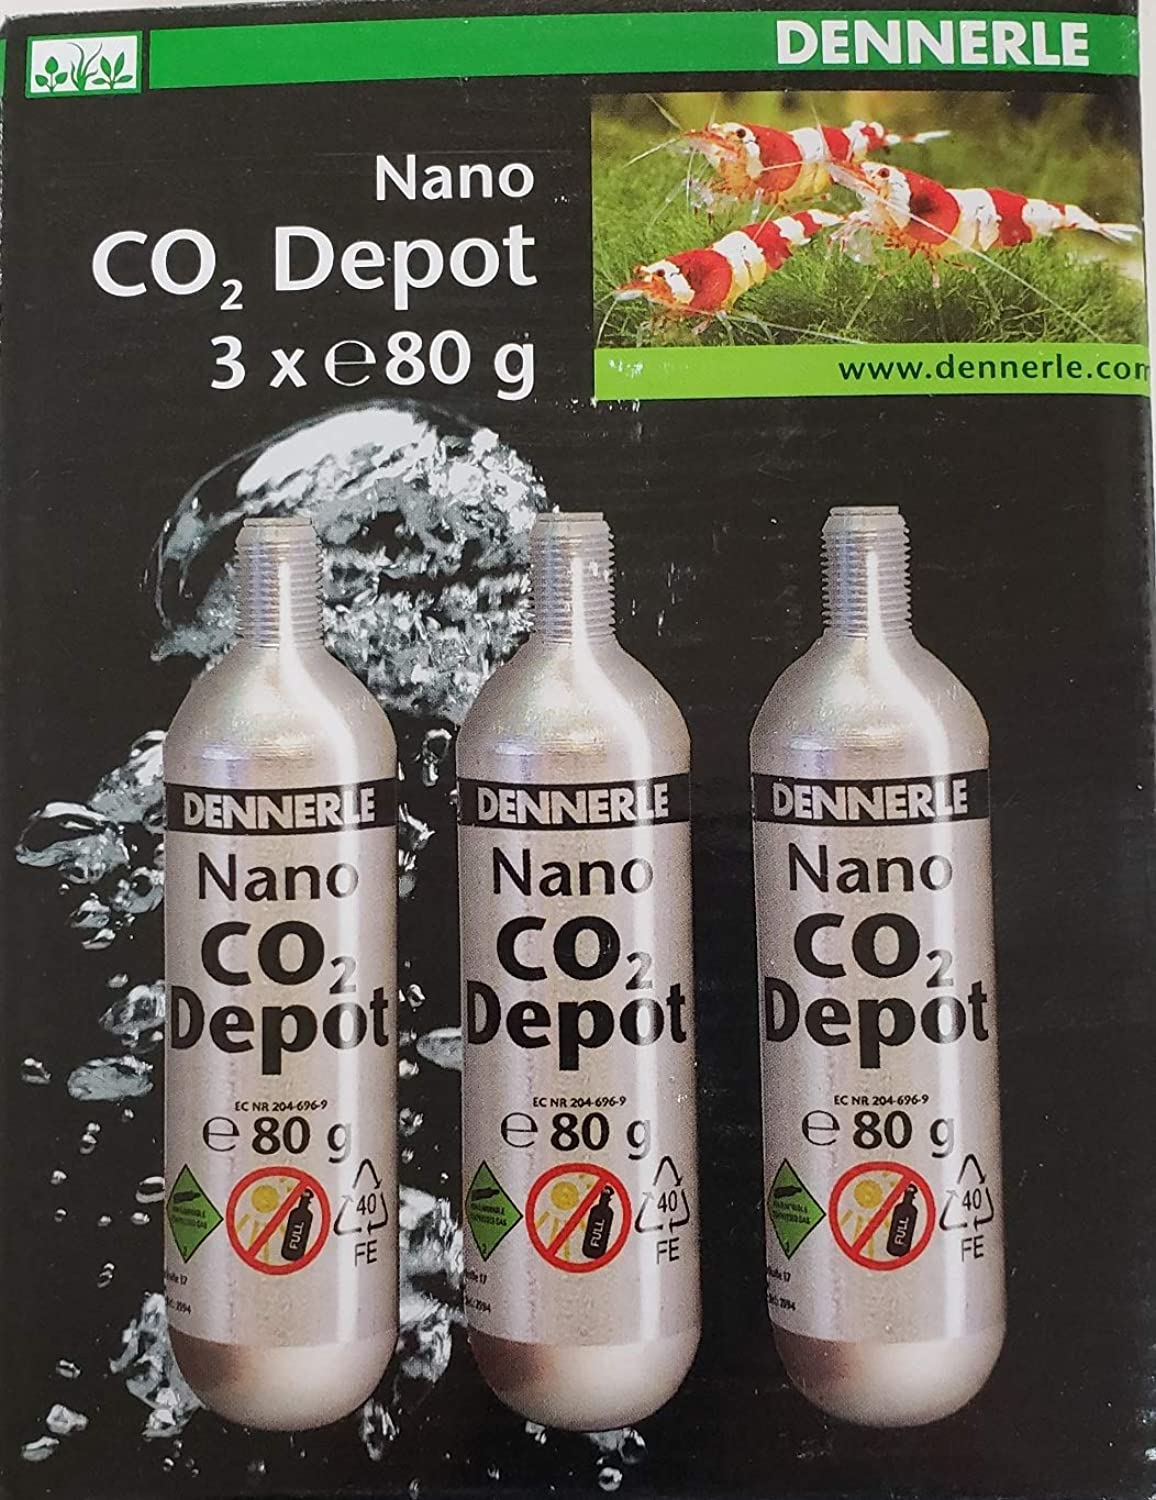 Dennerle 3 Pack Replacement Cartridge 80g  CO2 Nano Depot